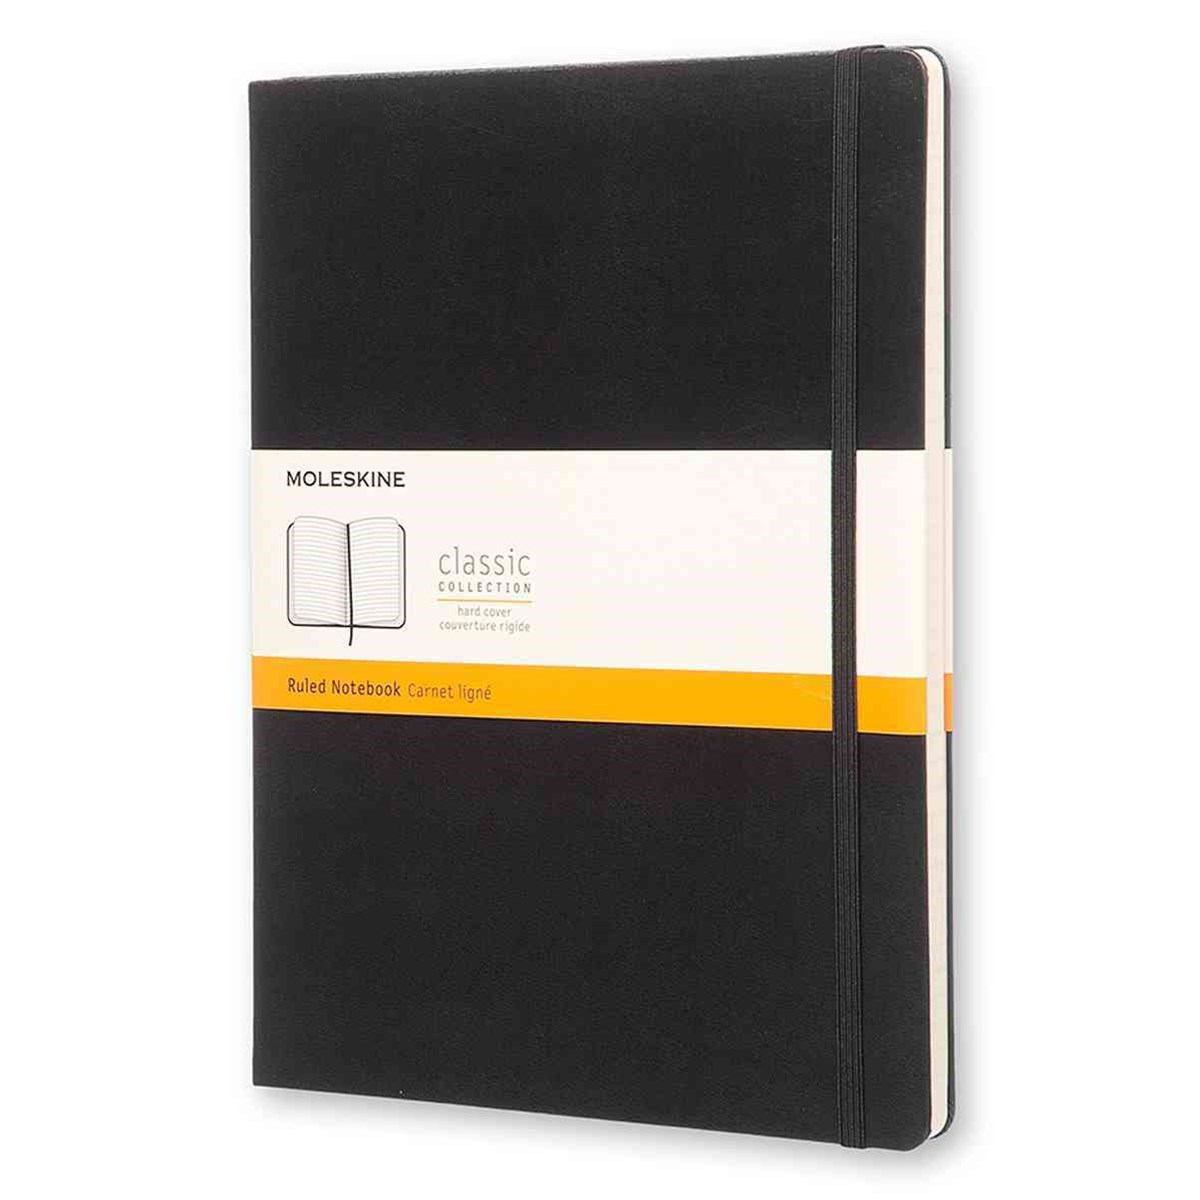 Moleskine - Classic Hard Cover Notebook - Ruled - Extra Large - Black